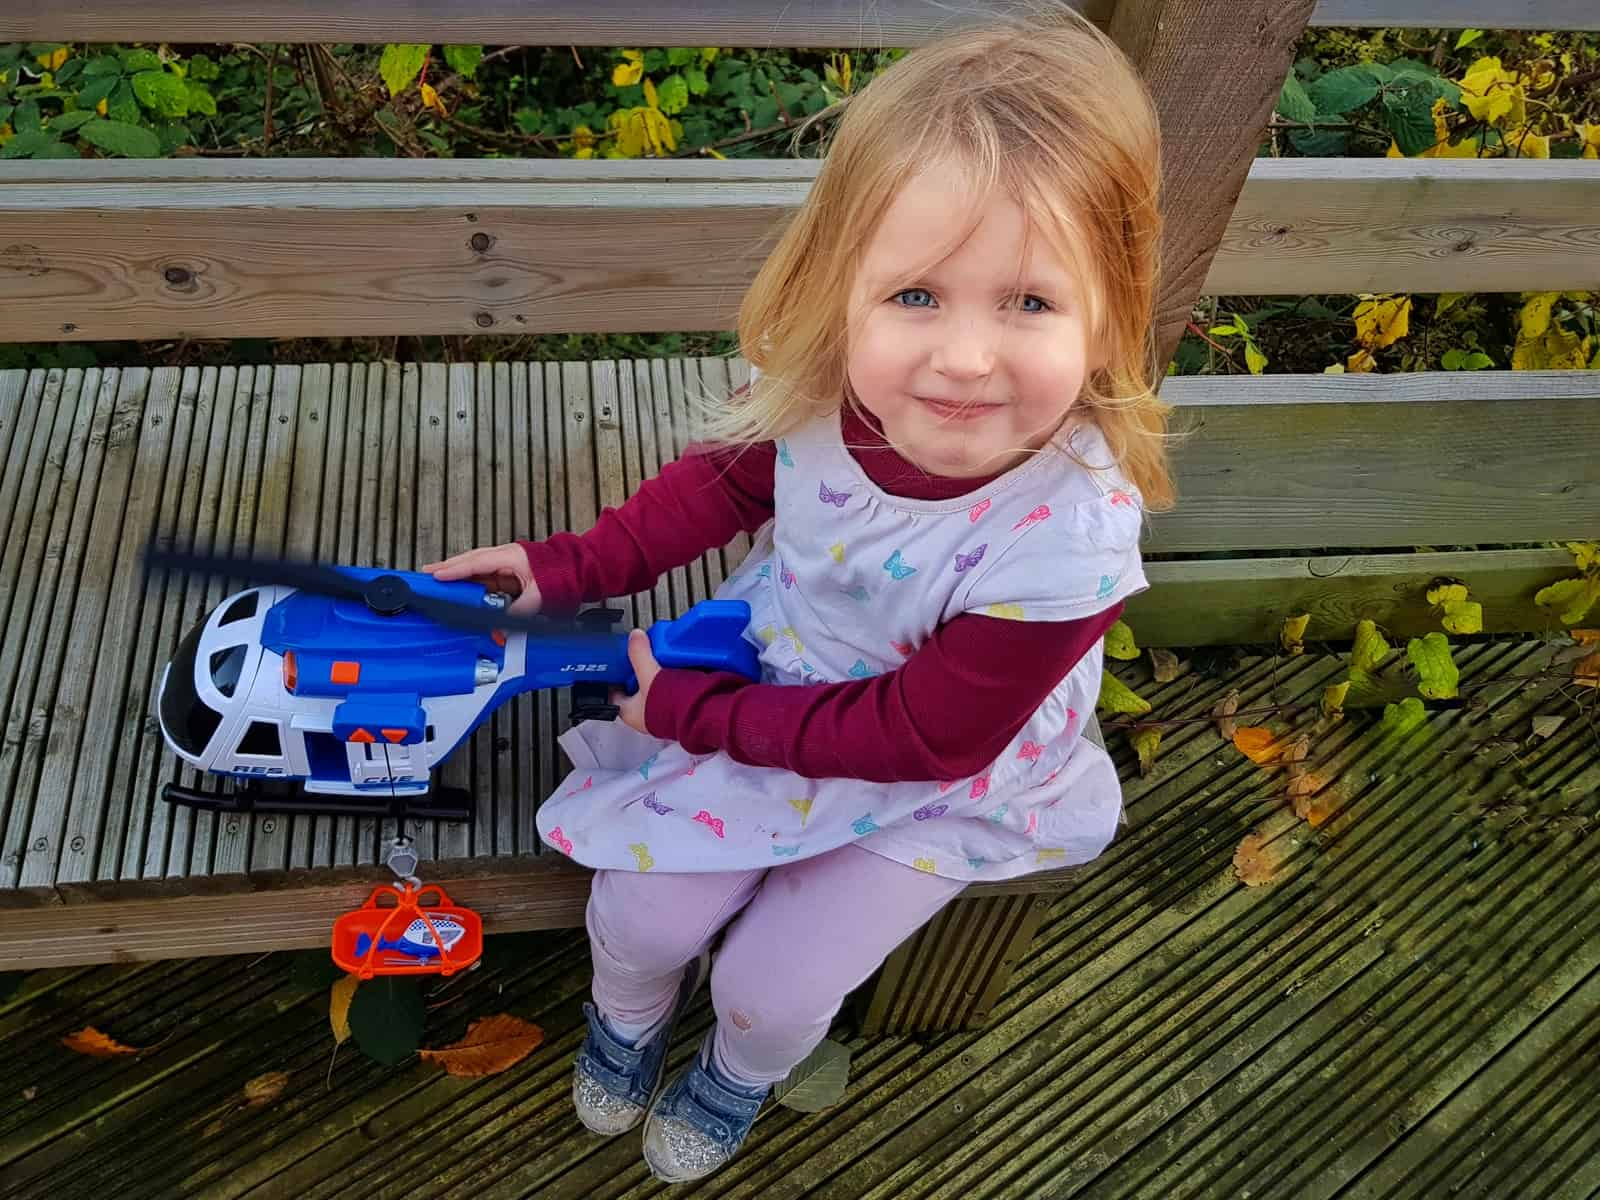 3 year old girl with toy helicopter